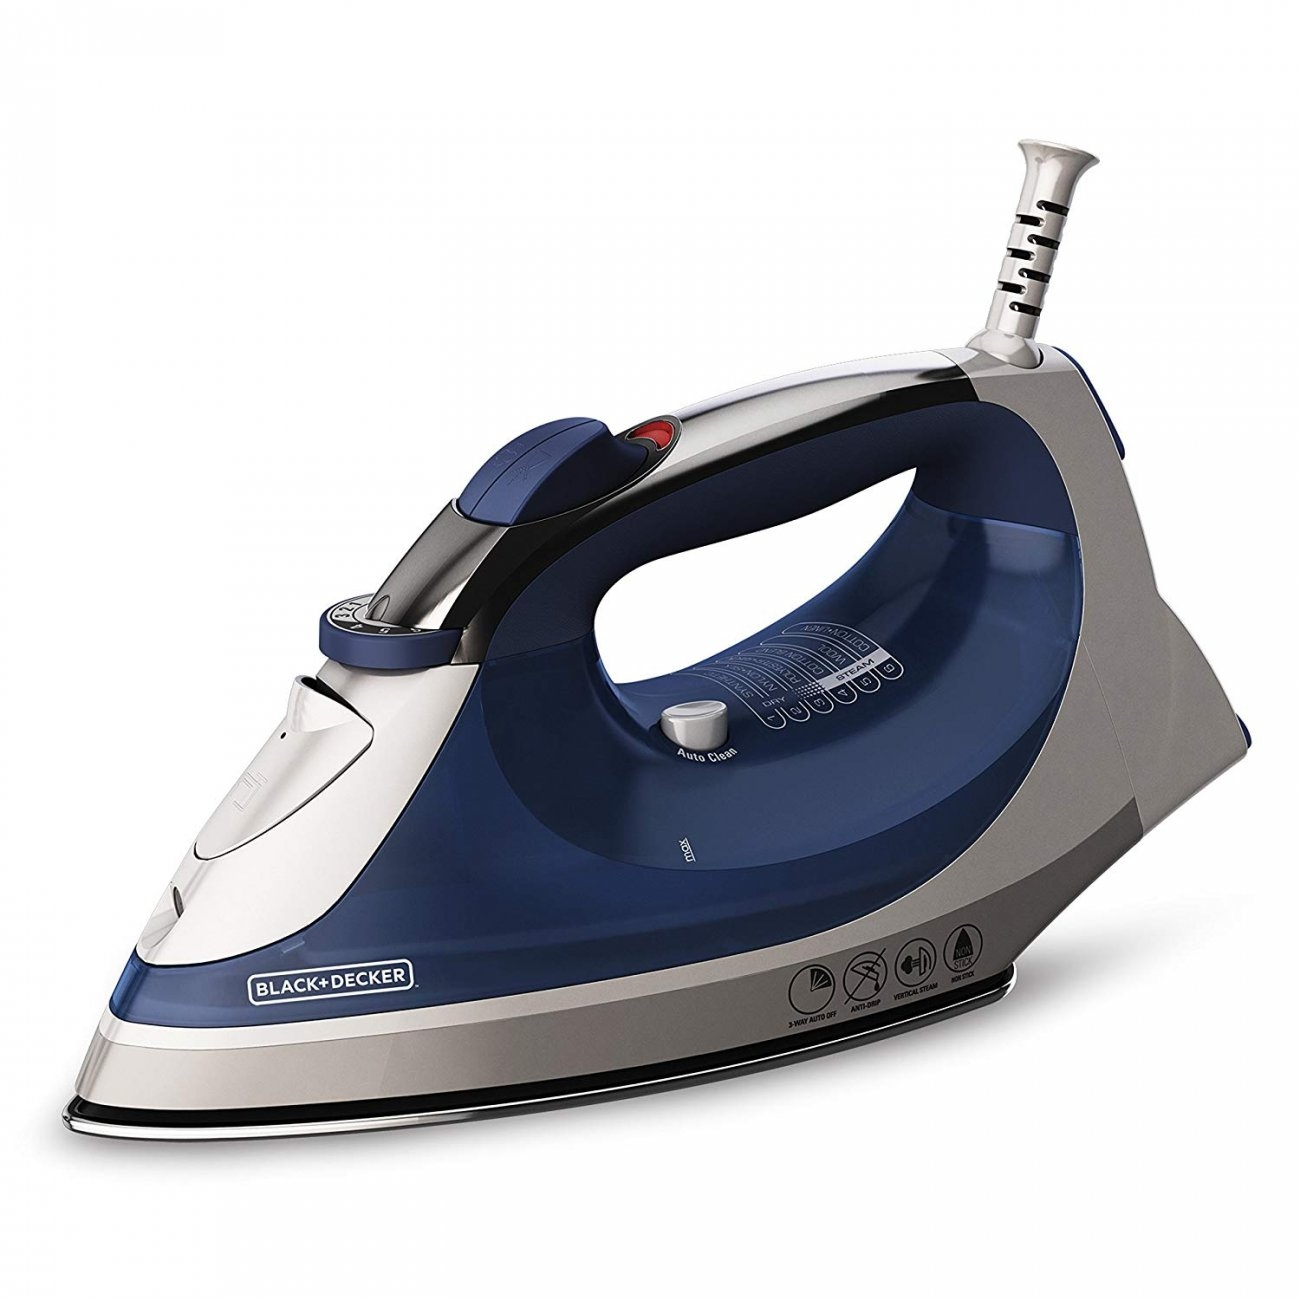 Corded Stainless Steel Heavy Duty Steam Iron With Smart Steam Settings, Blue